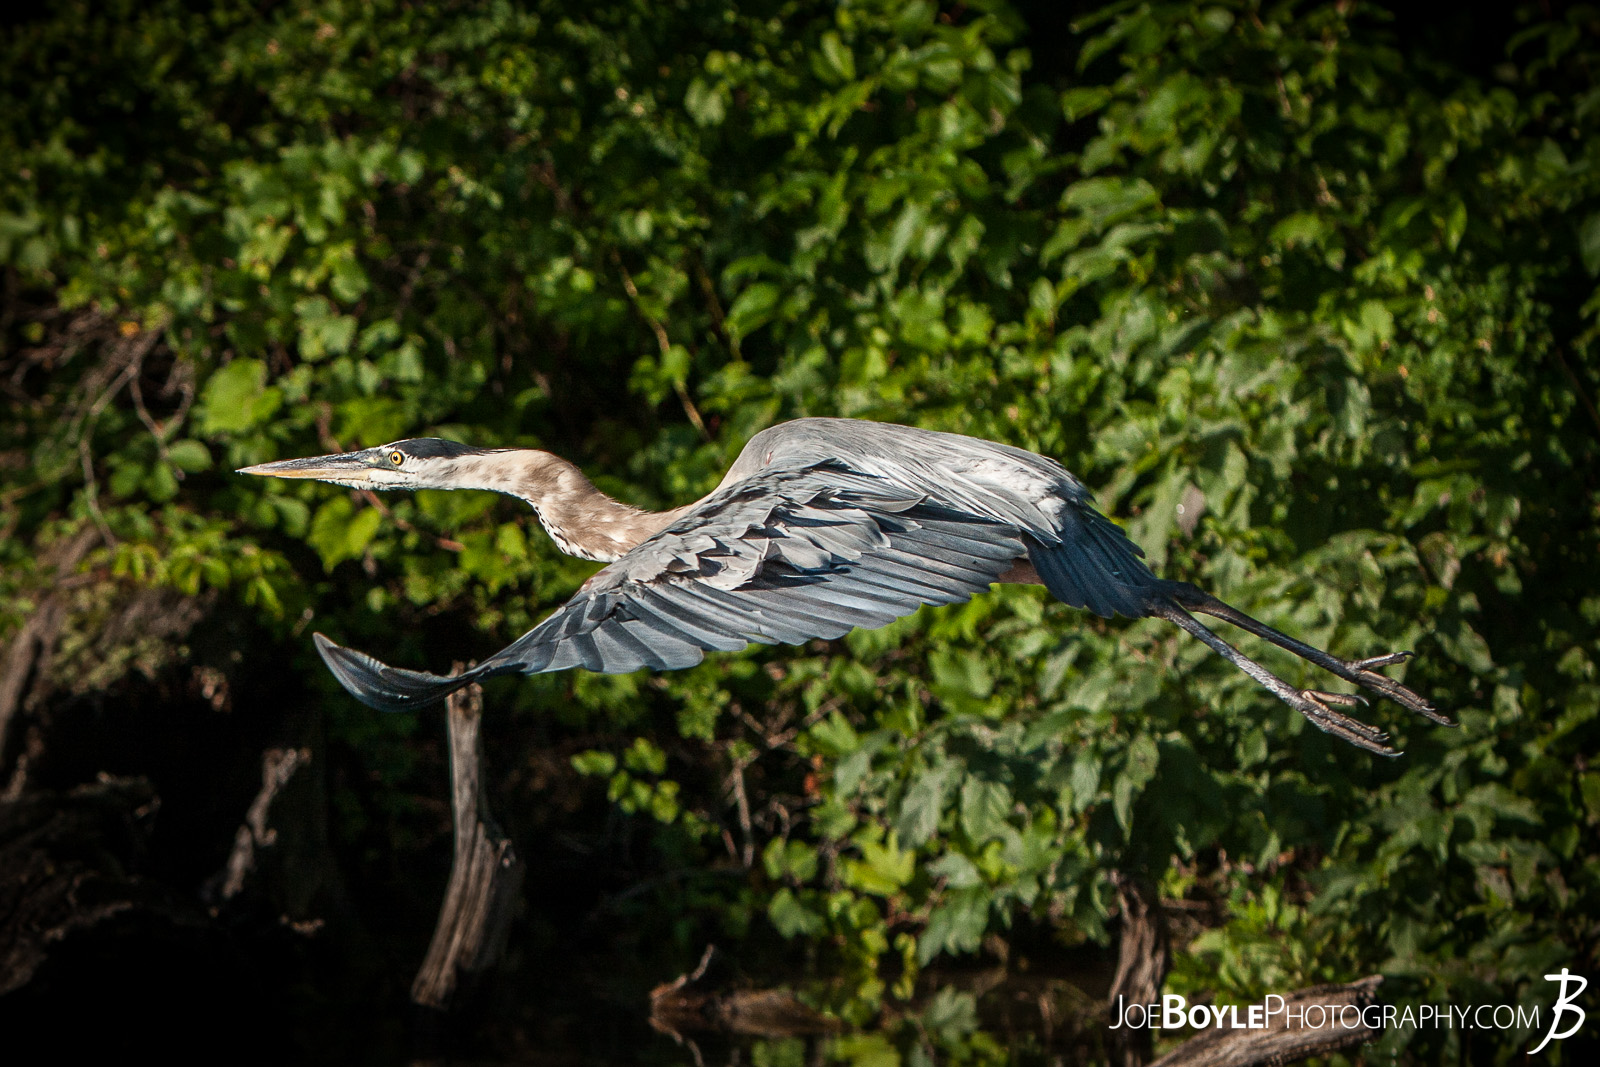 While on a trip up to Big Bass Lake, Michigan spending time with friends, fishing, having bonfires and what not, I was able to capture this Heron taking off and in flight!